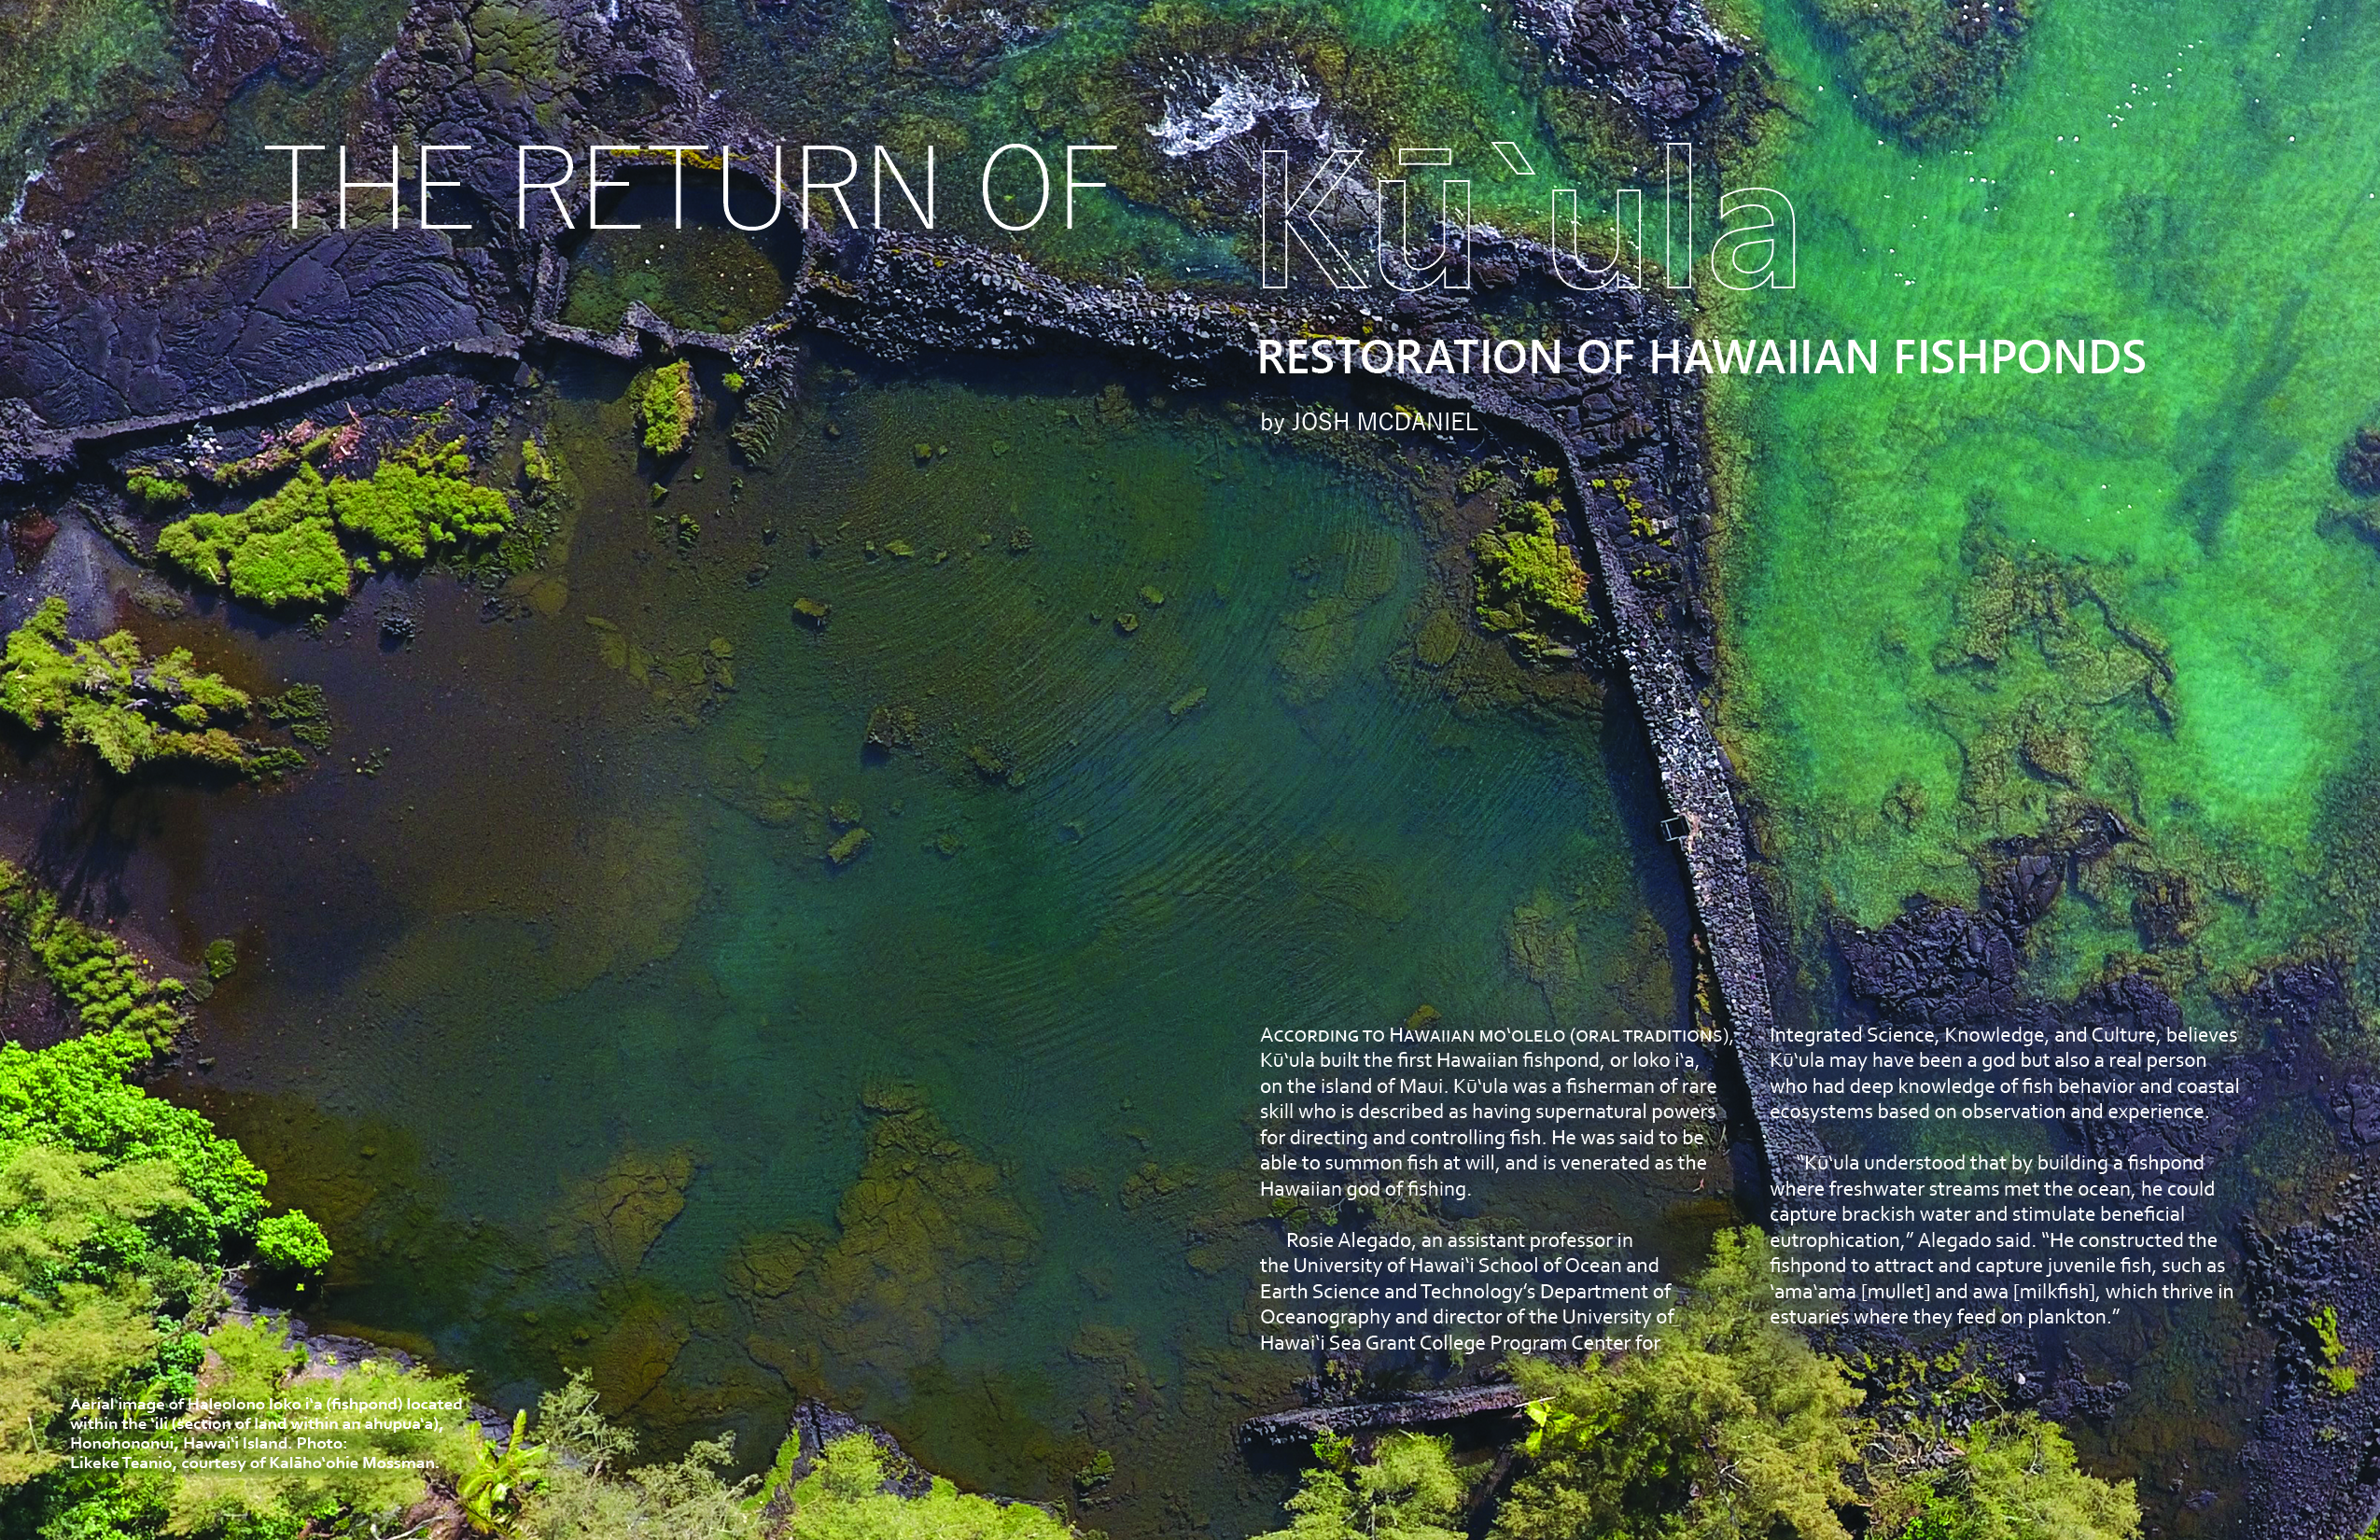 First page of article with large aerial photo of Hawaii Island fishpond and wall